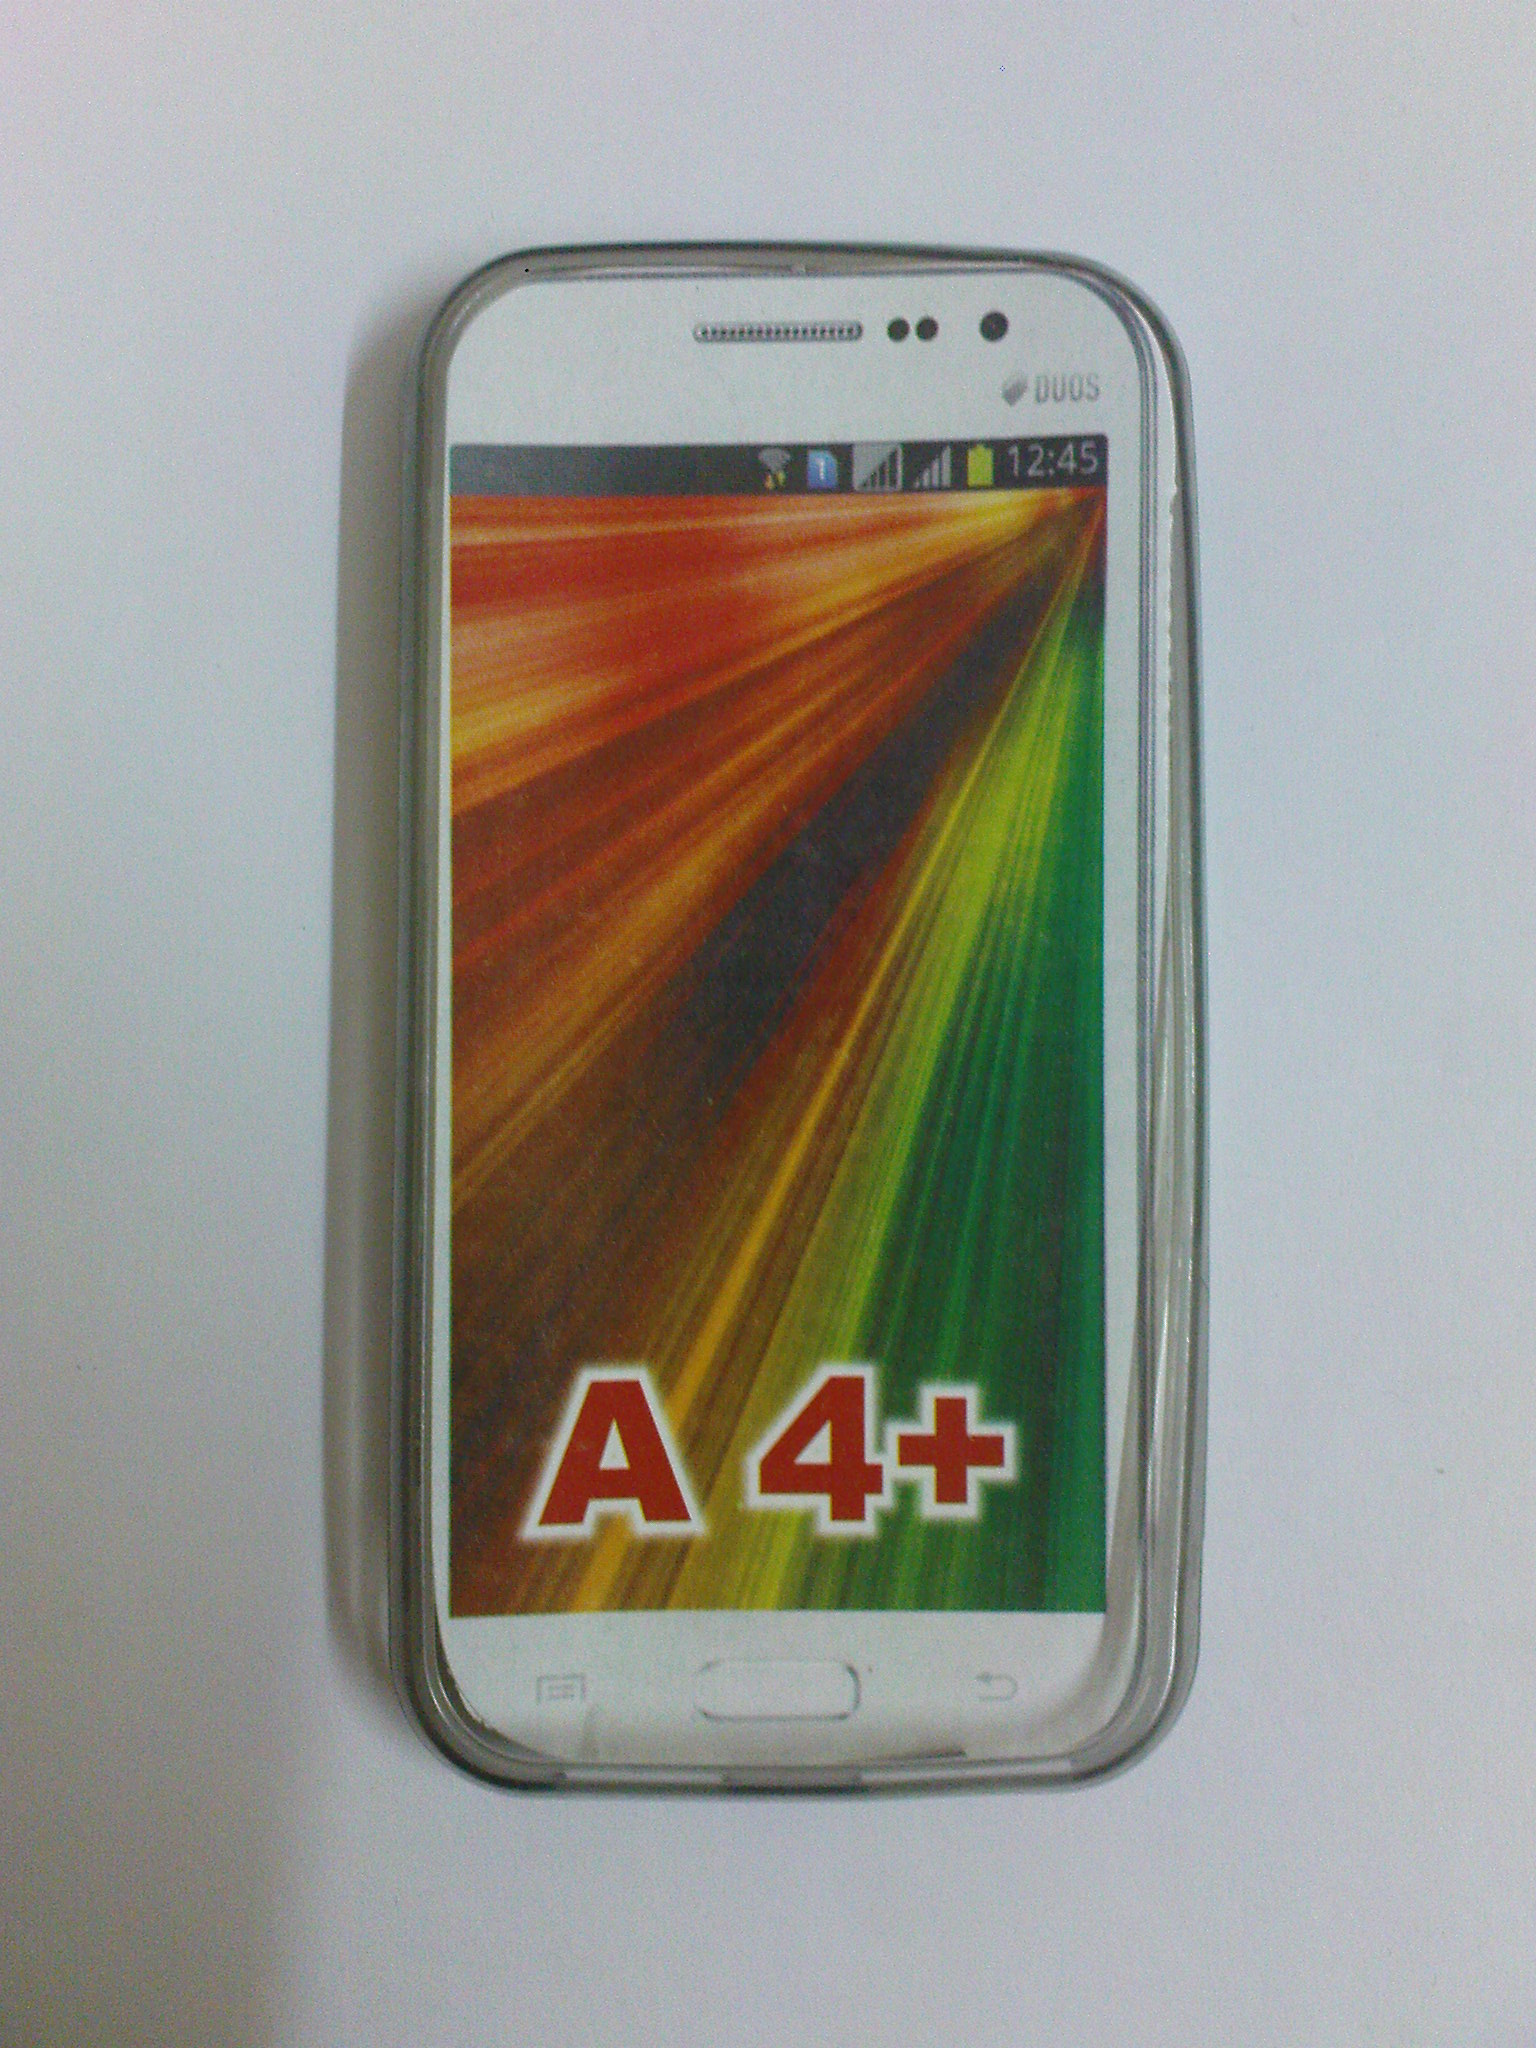 Karbonn A4  Plus Silicone Jelly Back Cover Case Battery Back Cover    Karbonn A4 Plus Price